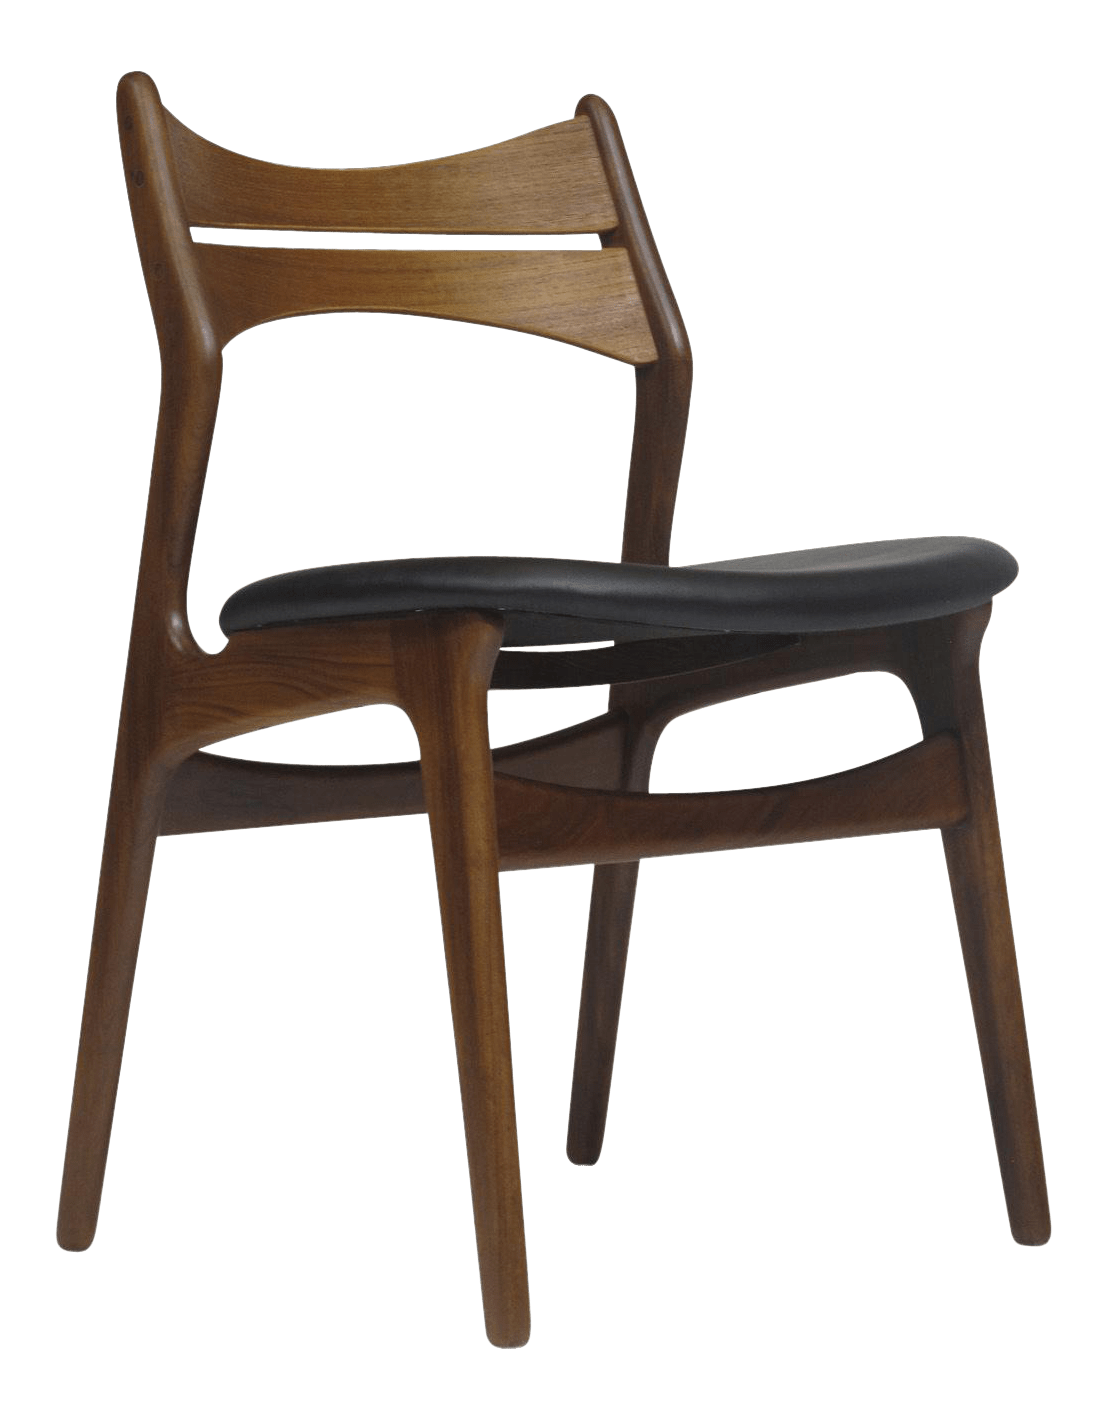 erik buck chairs plastic rocking lovely set of 6 teak dining in black leather decaso six solid with curved back newly restored and upholstered